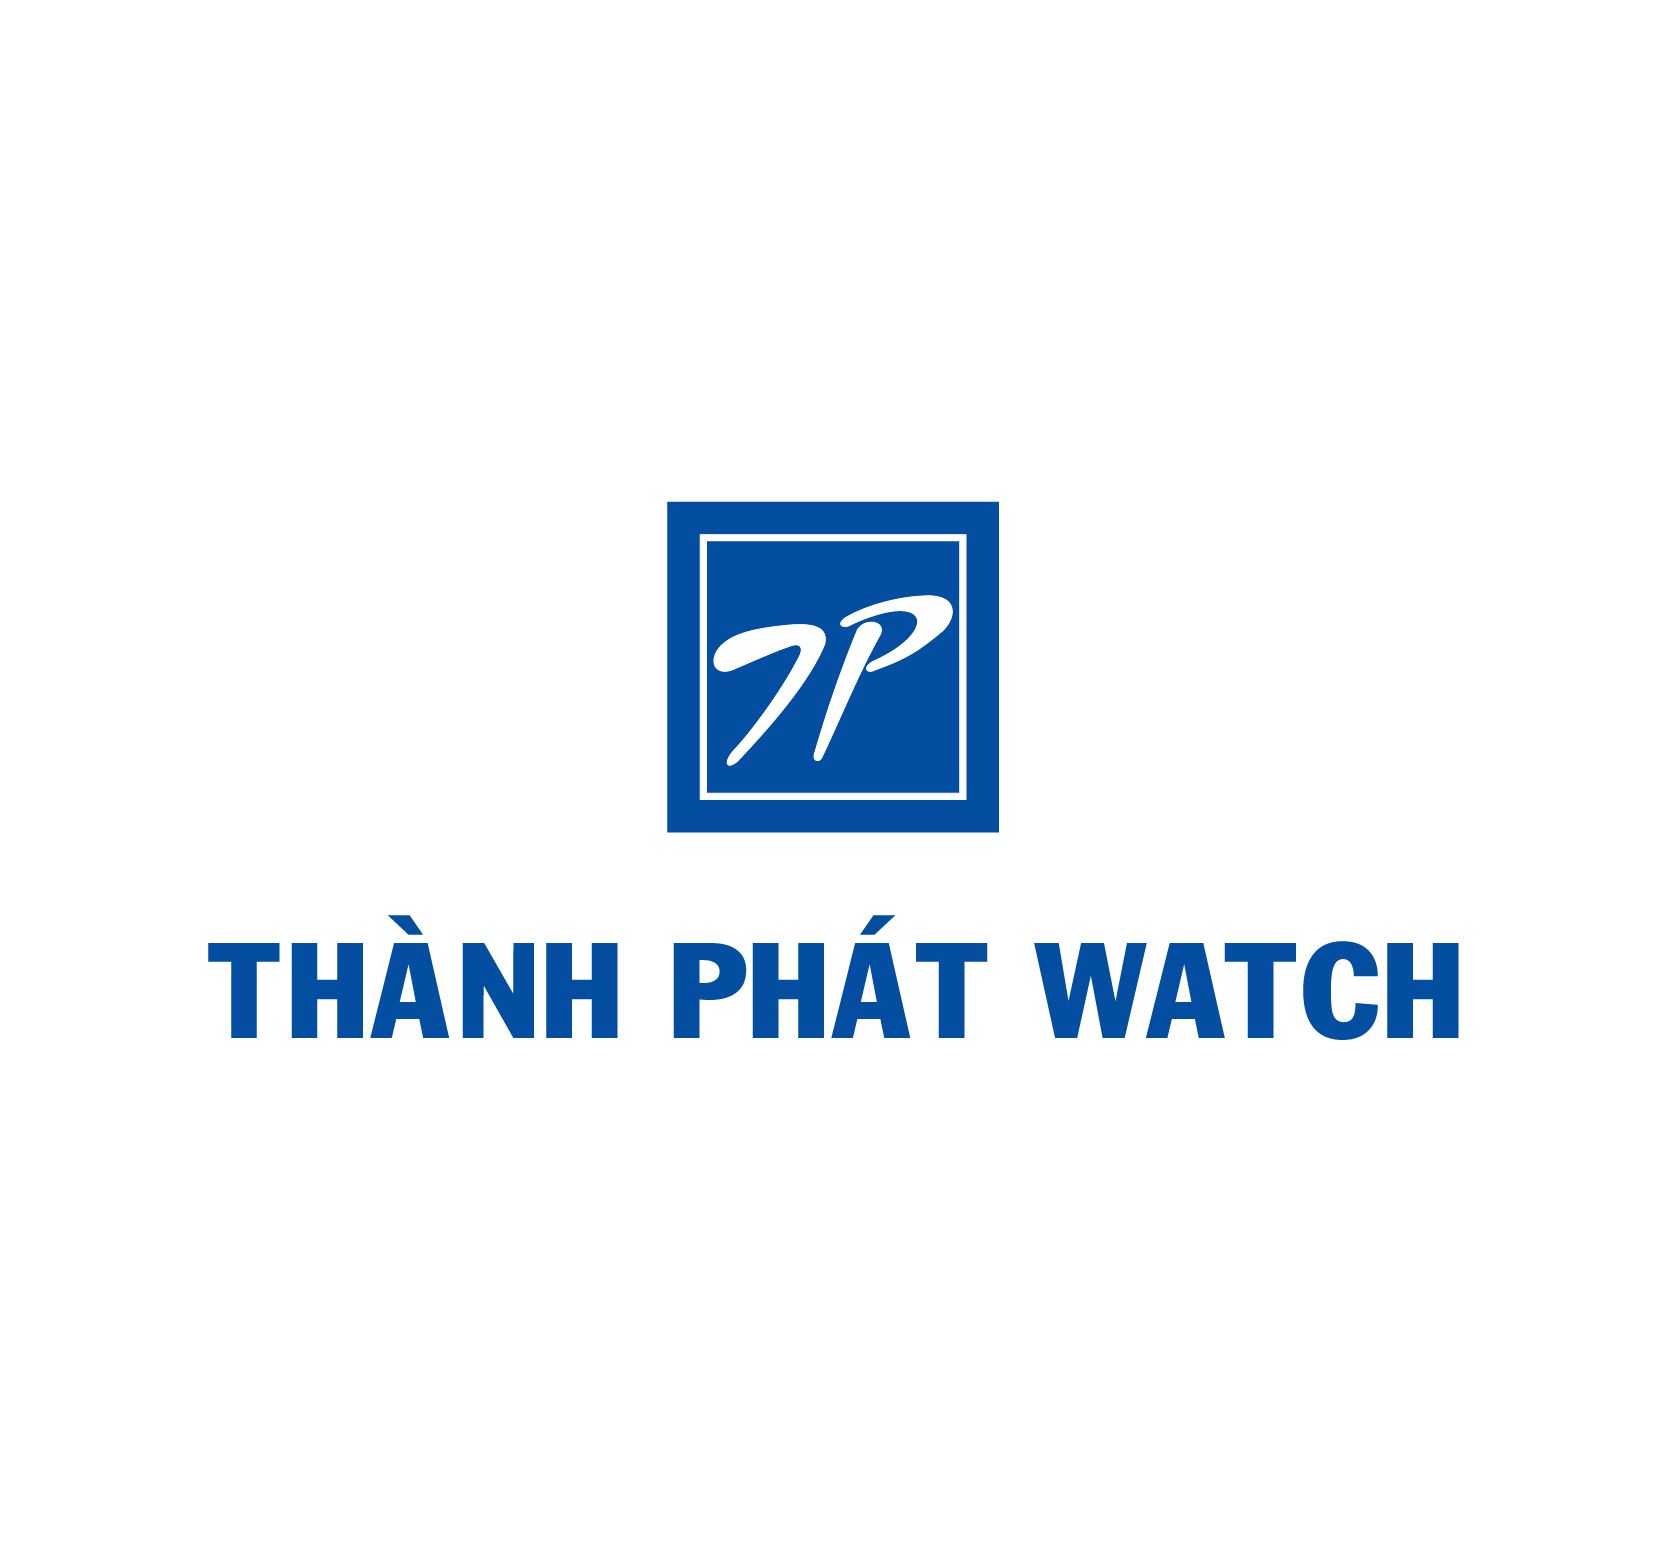 Thanh Phat Watch